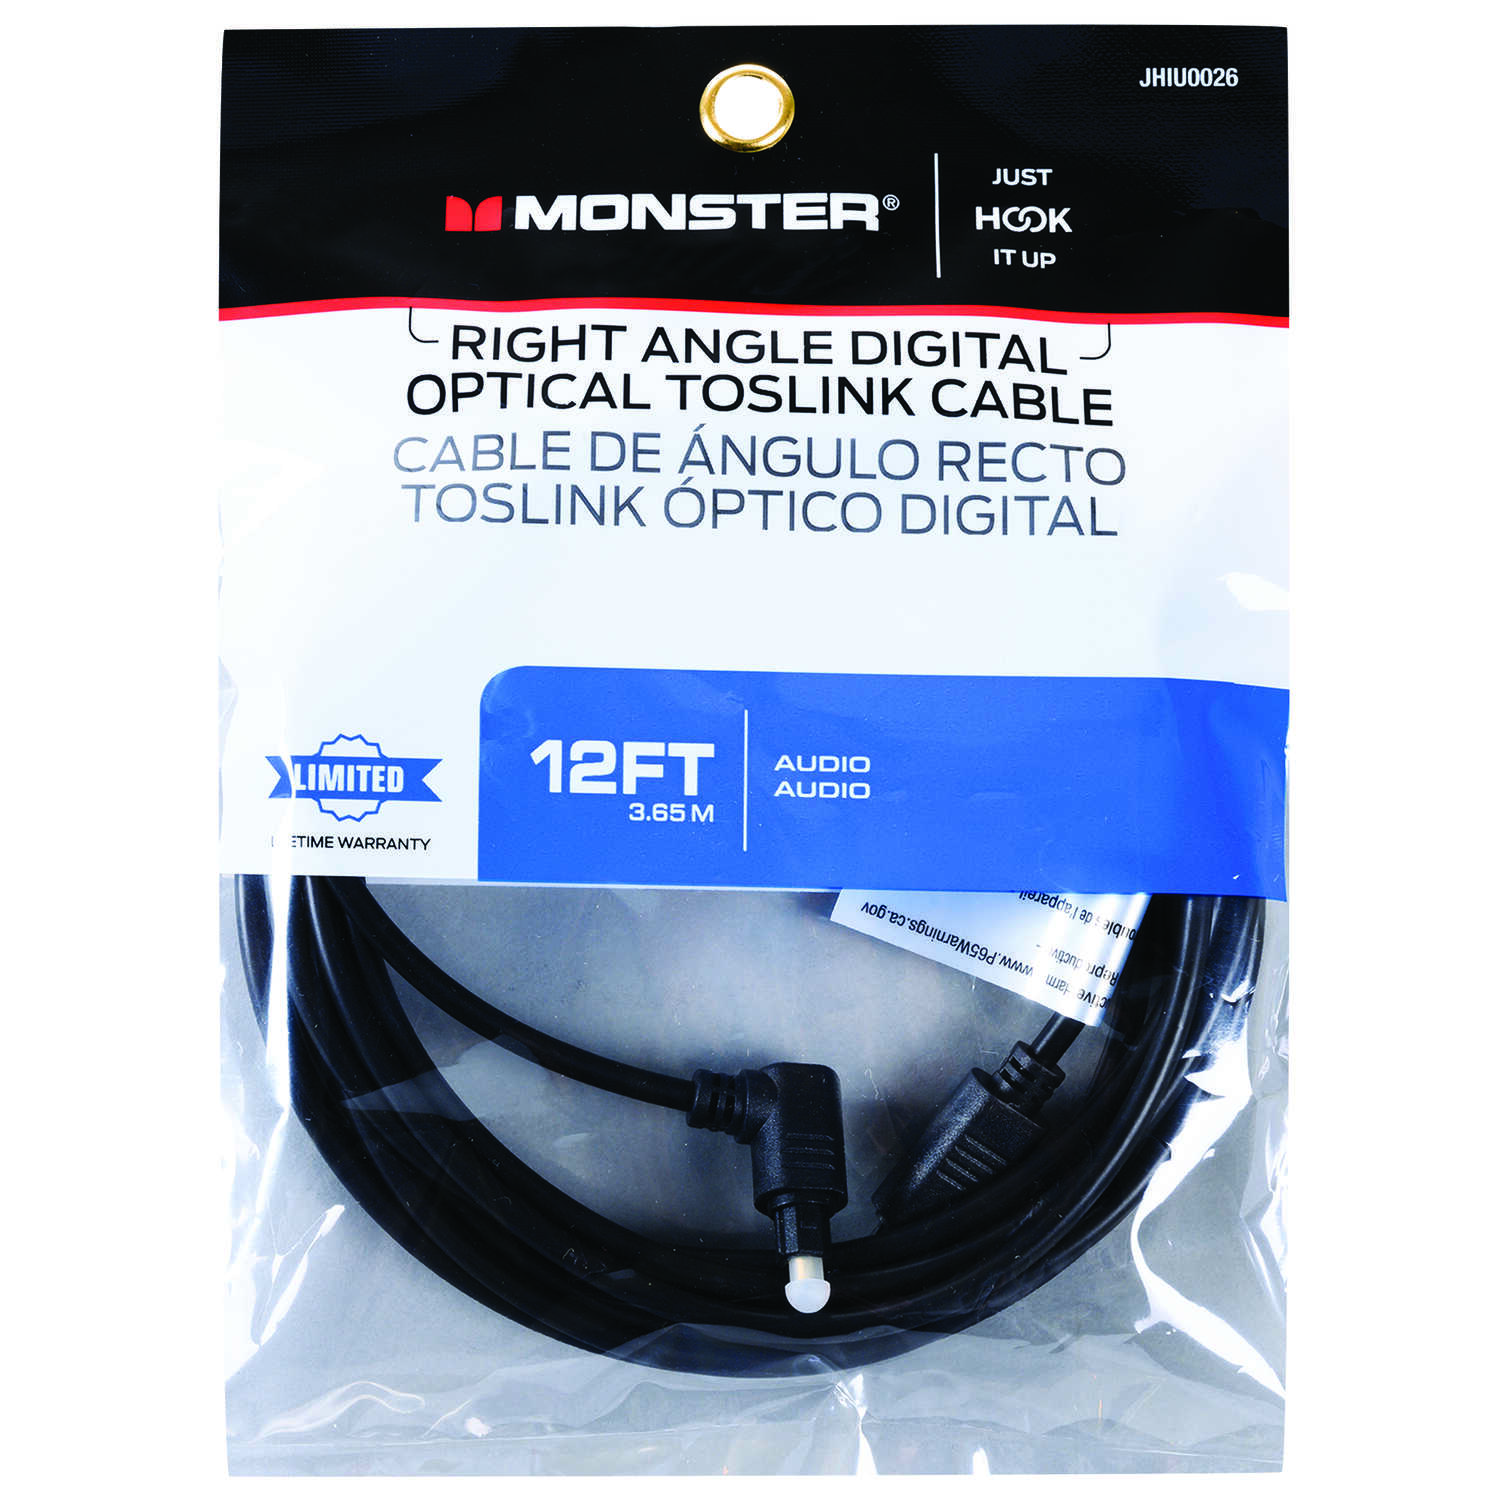 Monster Cable Just Hook It Up 12 ft. L Digital Optical Toslink Cable ...